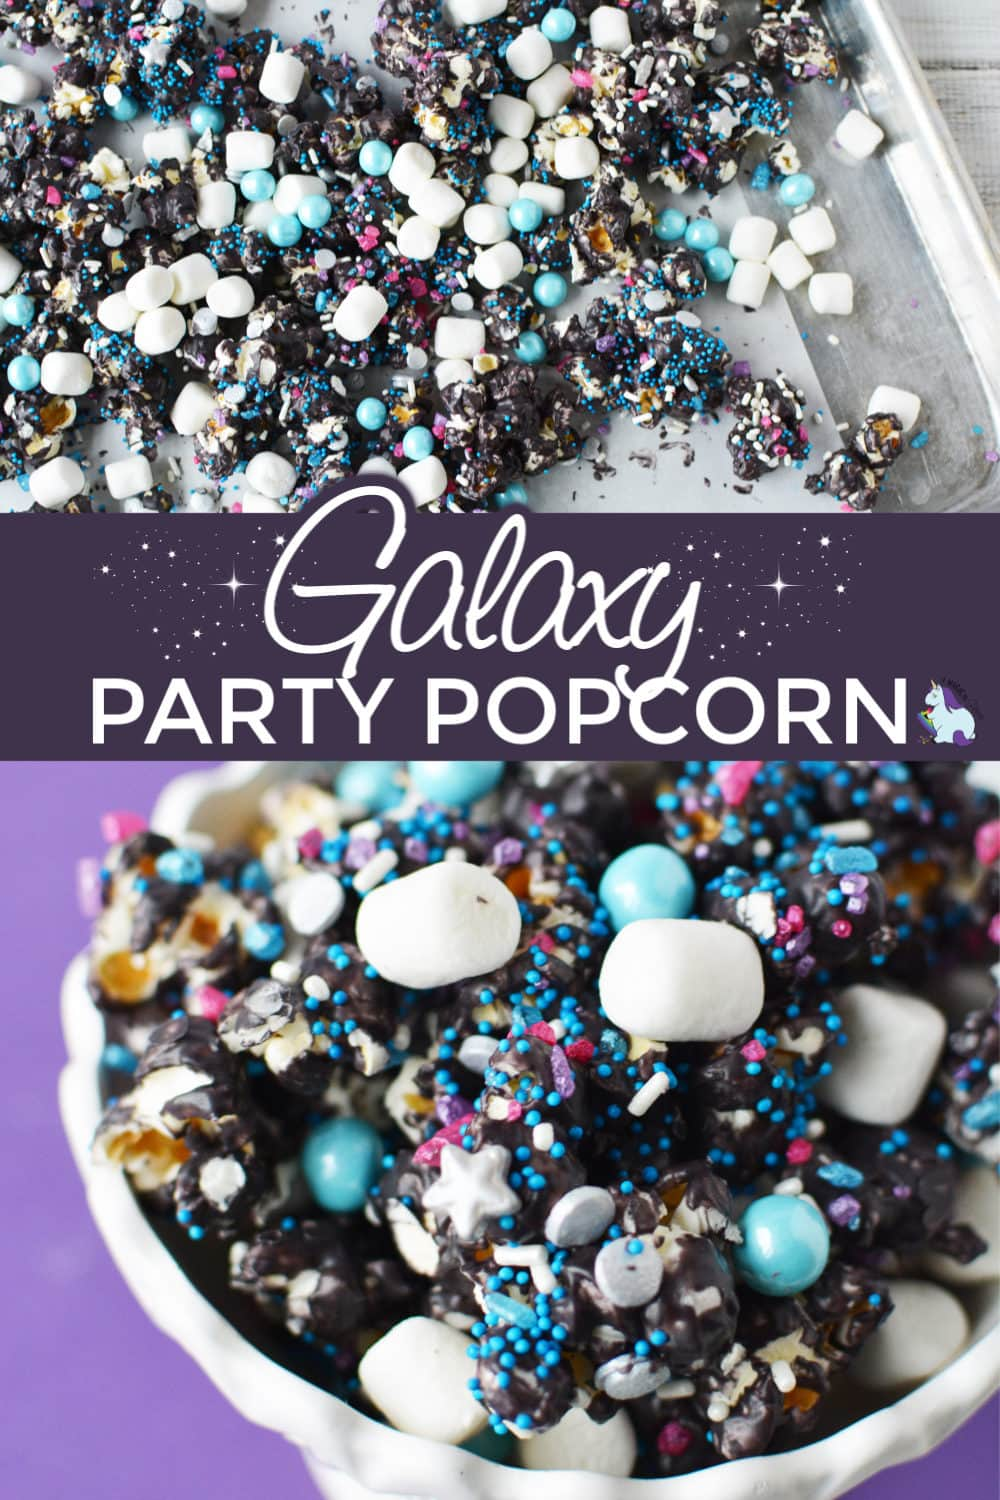 Galaxy Party Popcorn on purple background